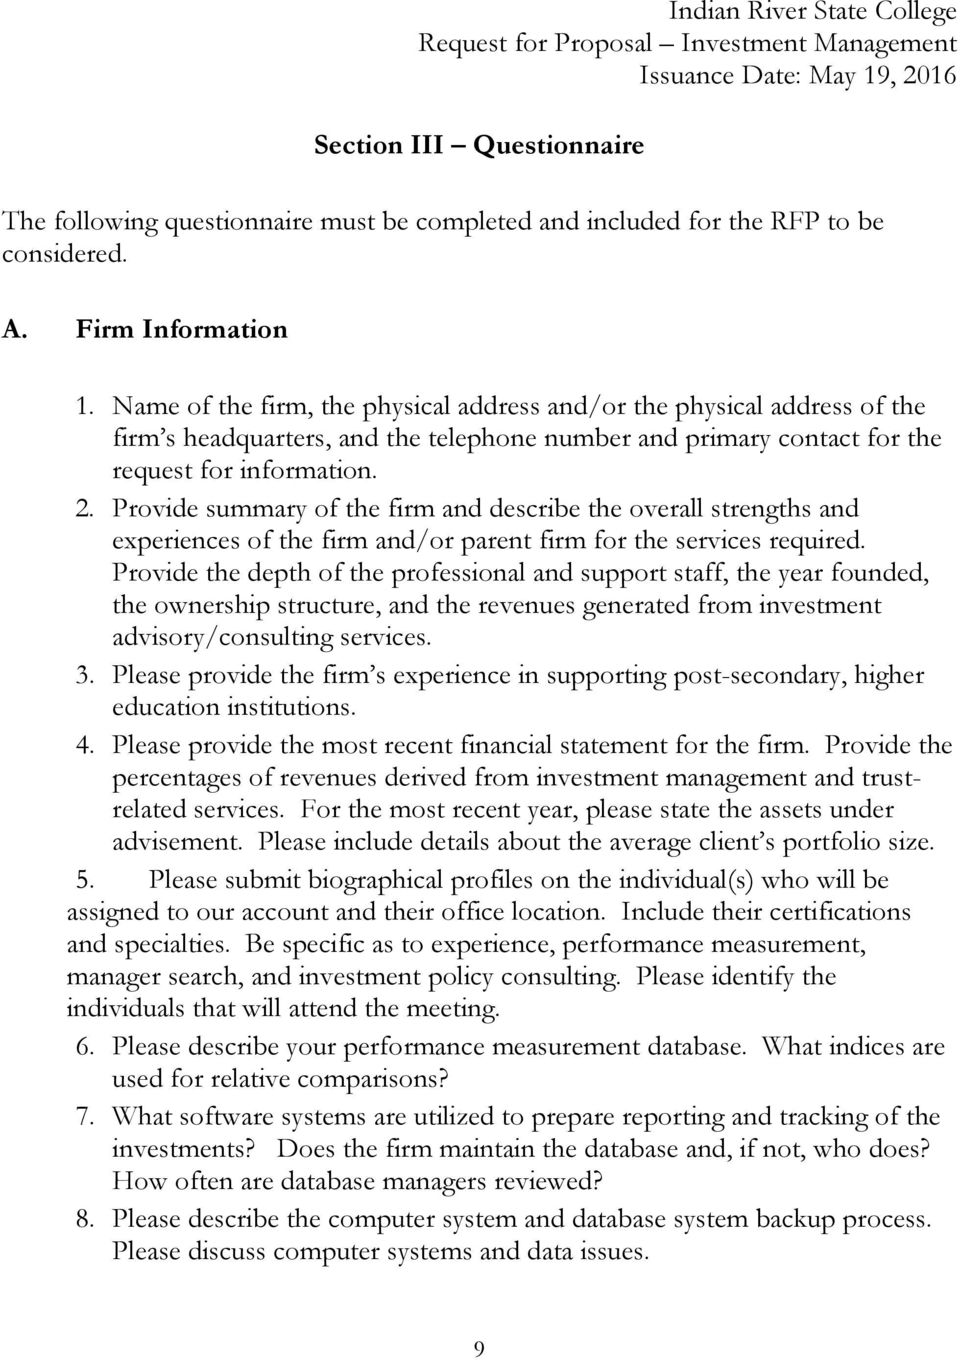 RFP 15/ Request for Proposal  Investment Management - PDF